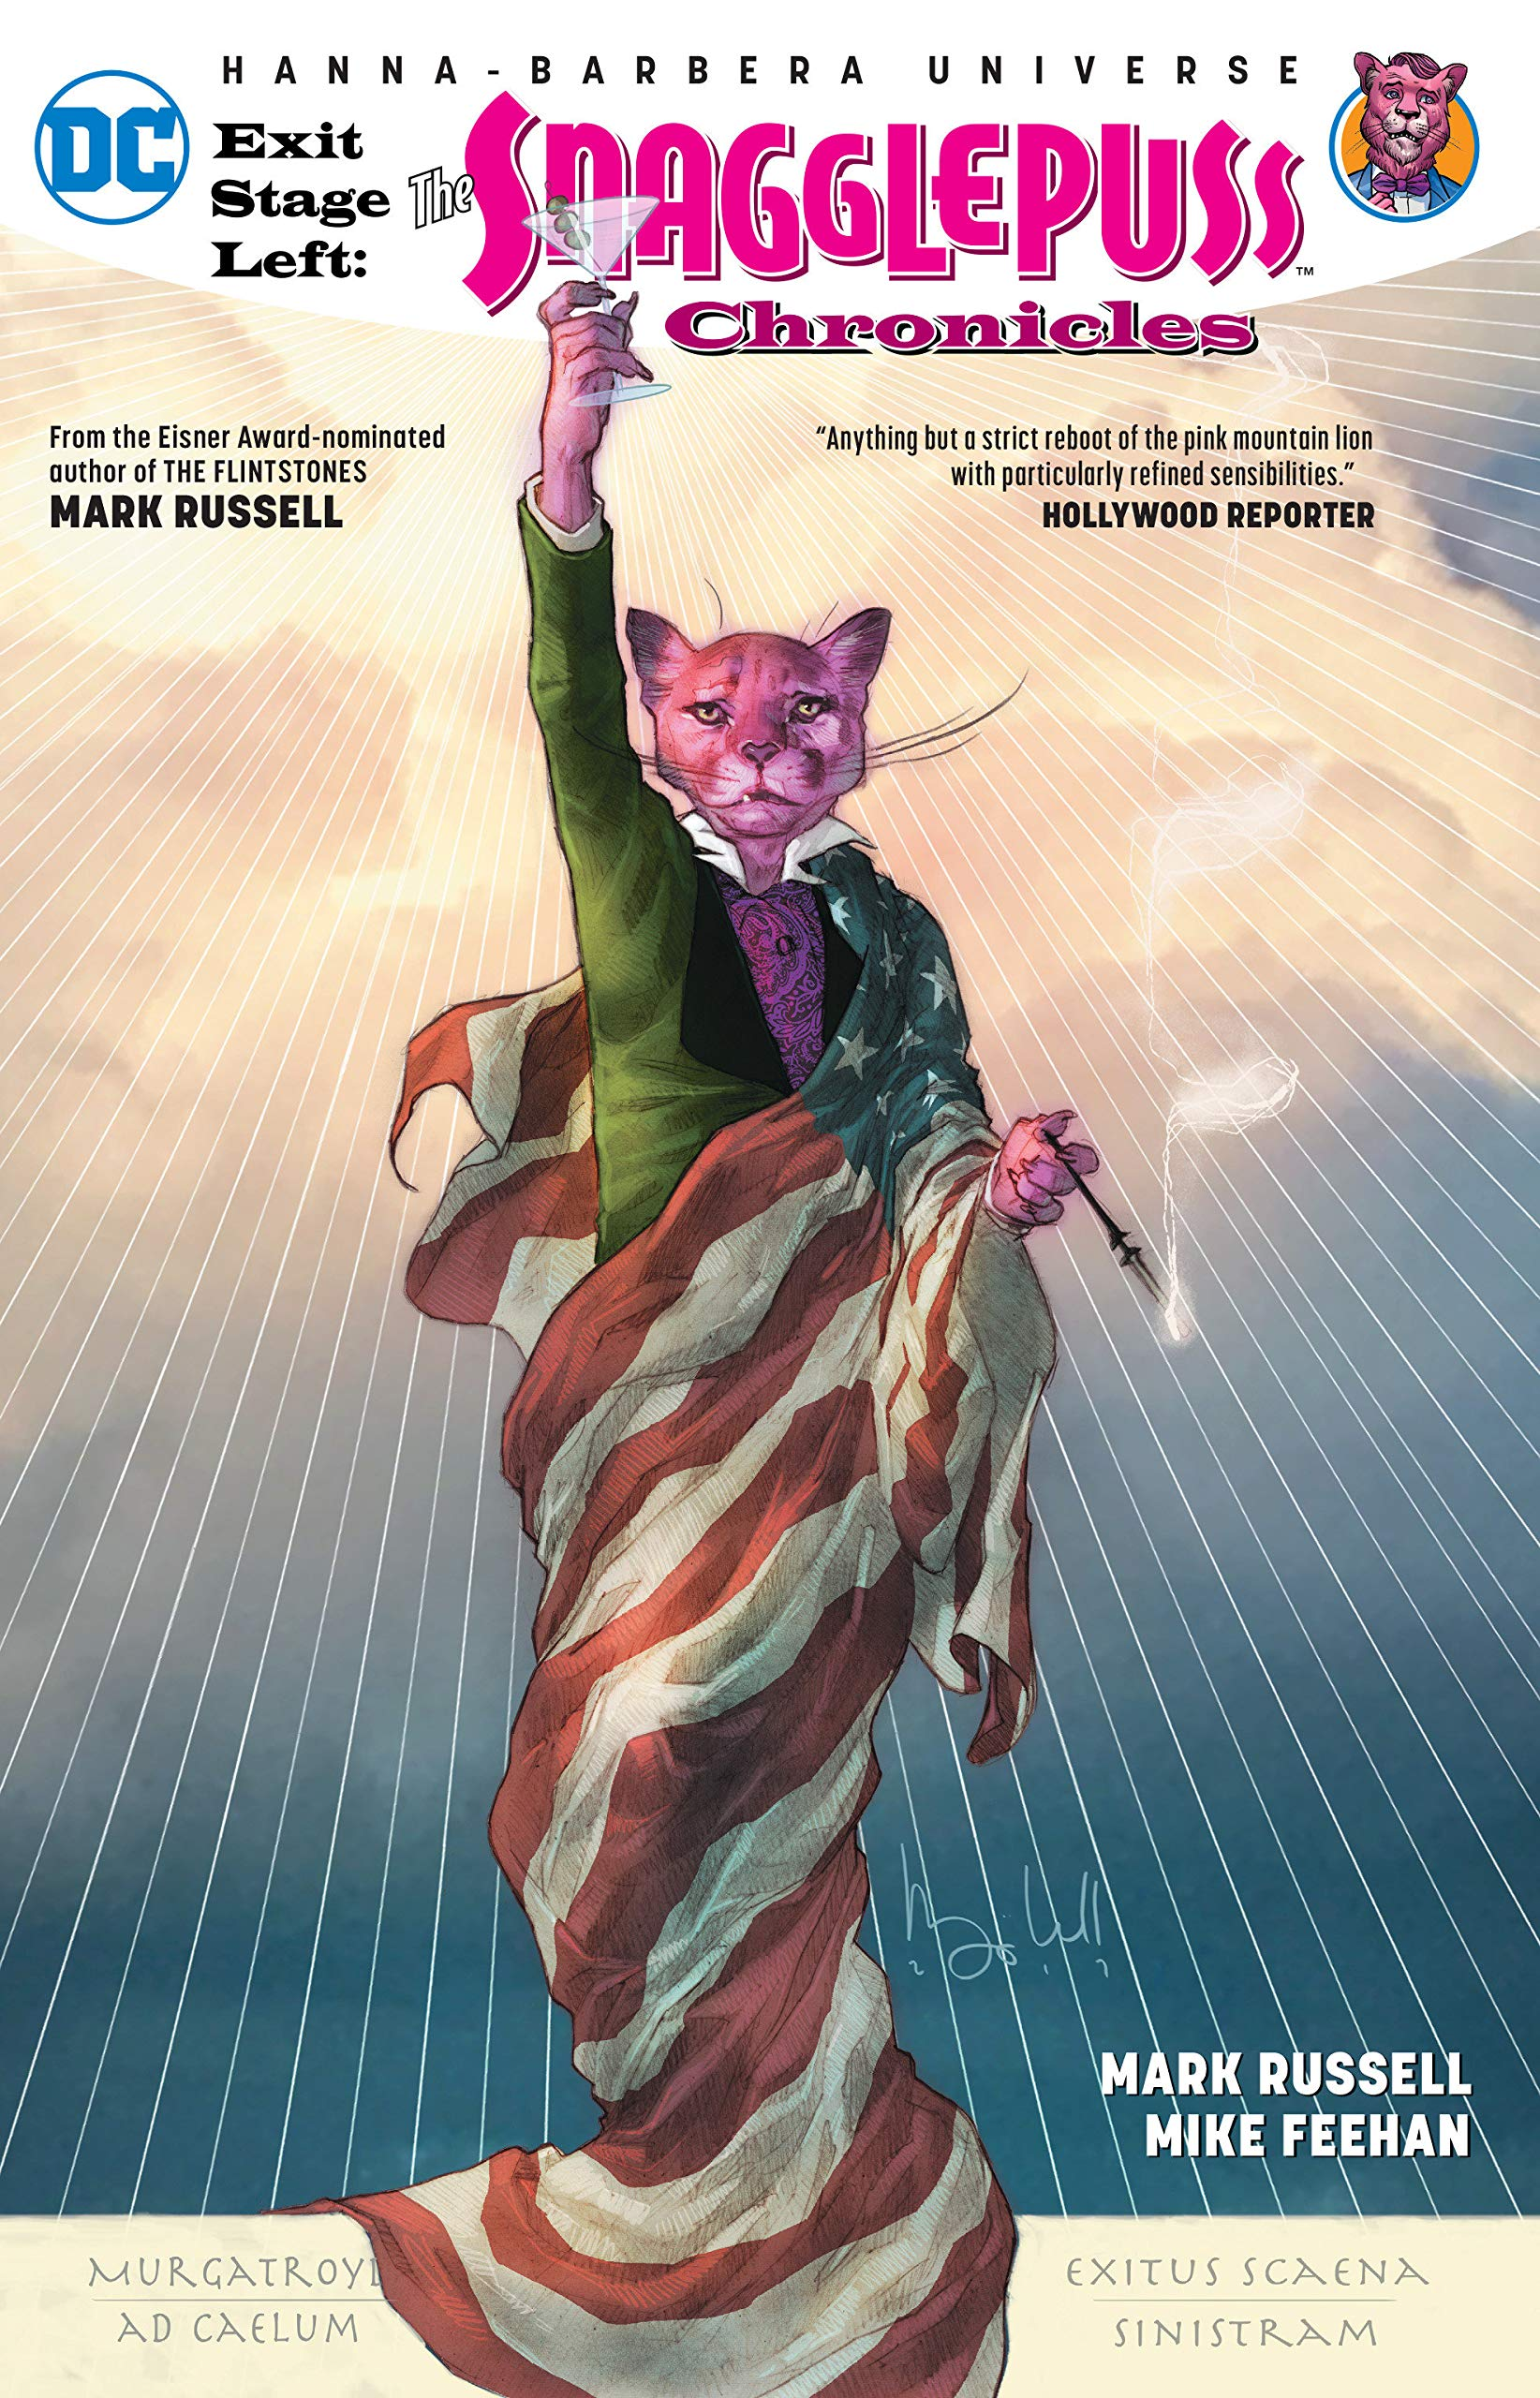 2019 GLAAD Media Awards Nominees: Exit Stage Left: The Snagglepuss Chronicles